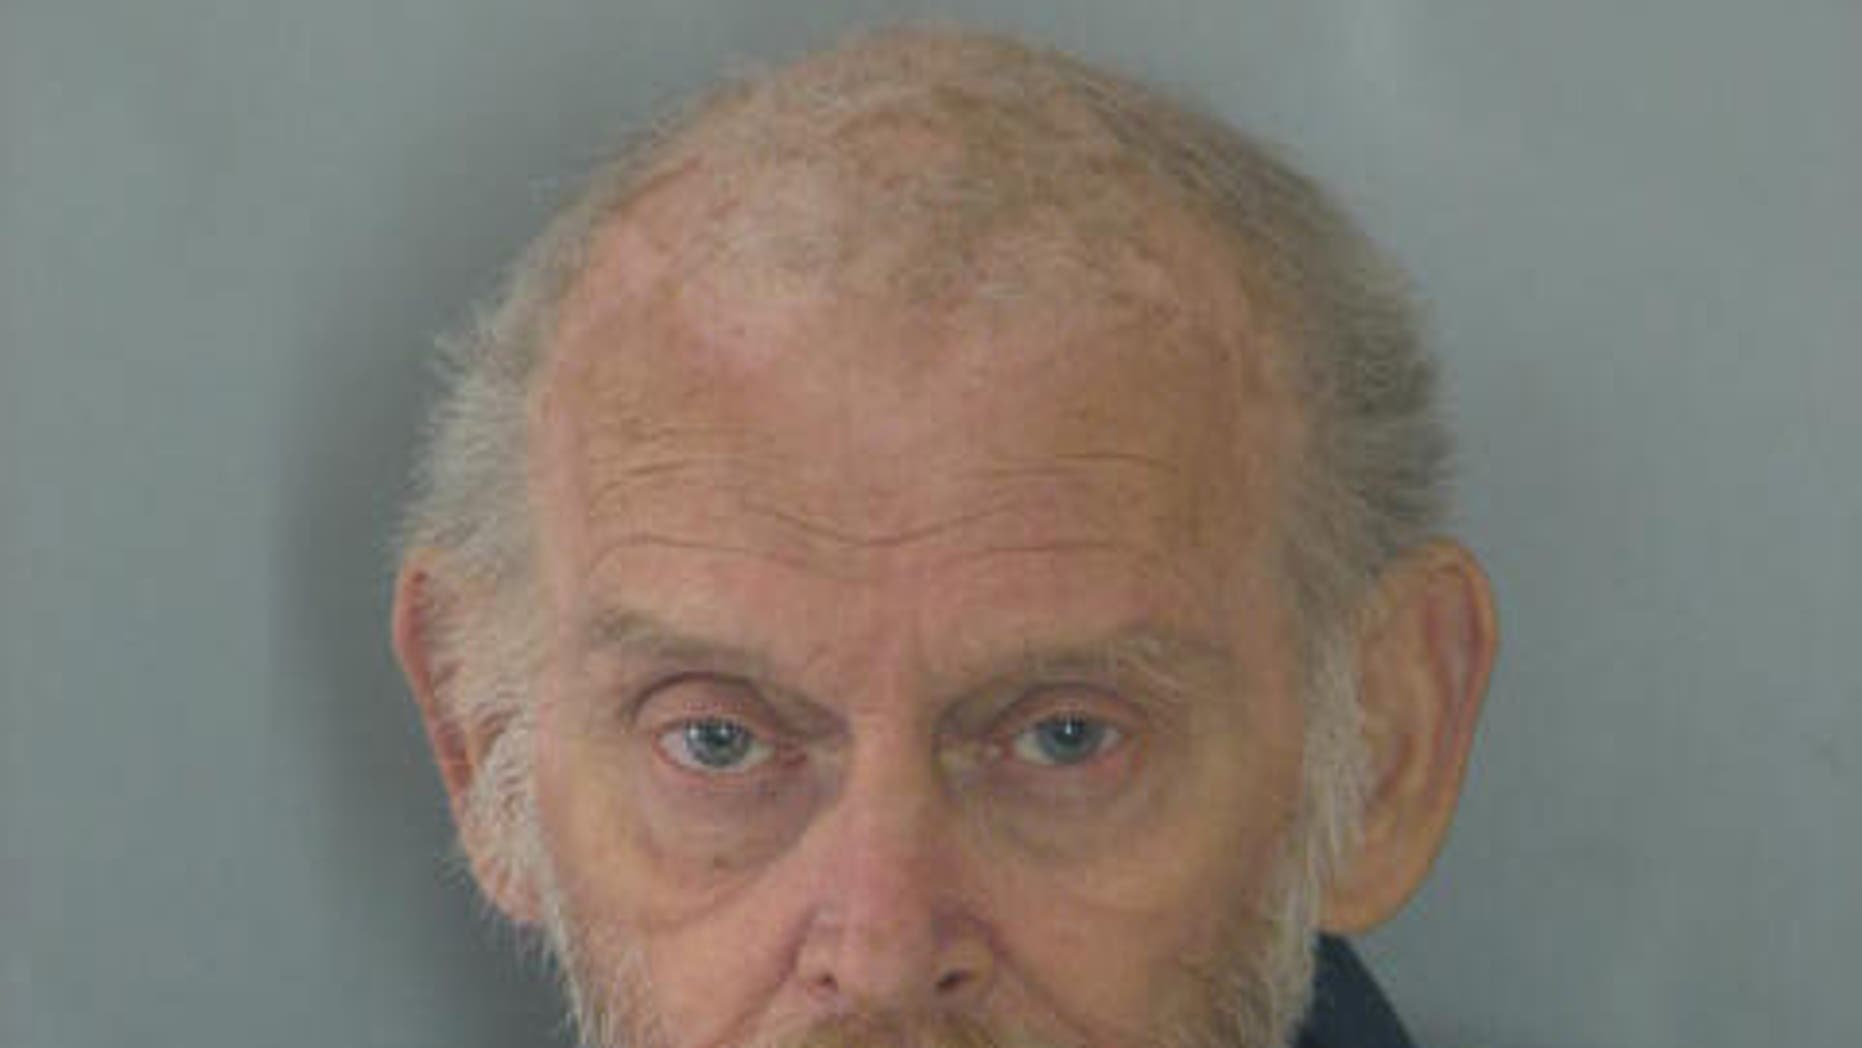 FILE - This undated photo provided by the Georgetown Police Department shows James L. Clay, 67. Clay charged last month in a 1967 Arkansas killing is fighting extradition.  At a hearing Tuesday, April 14, 2015 in Georgetown, Del., Clay's attorney questioned a filing by Arkansas authorities, arguing that it was not notarized. Clay is charged in the 1967 shooting death of James Ricks of North Little Rock. (Georgetown Police Department via AP)